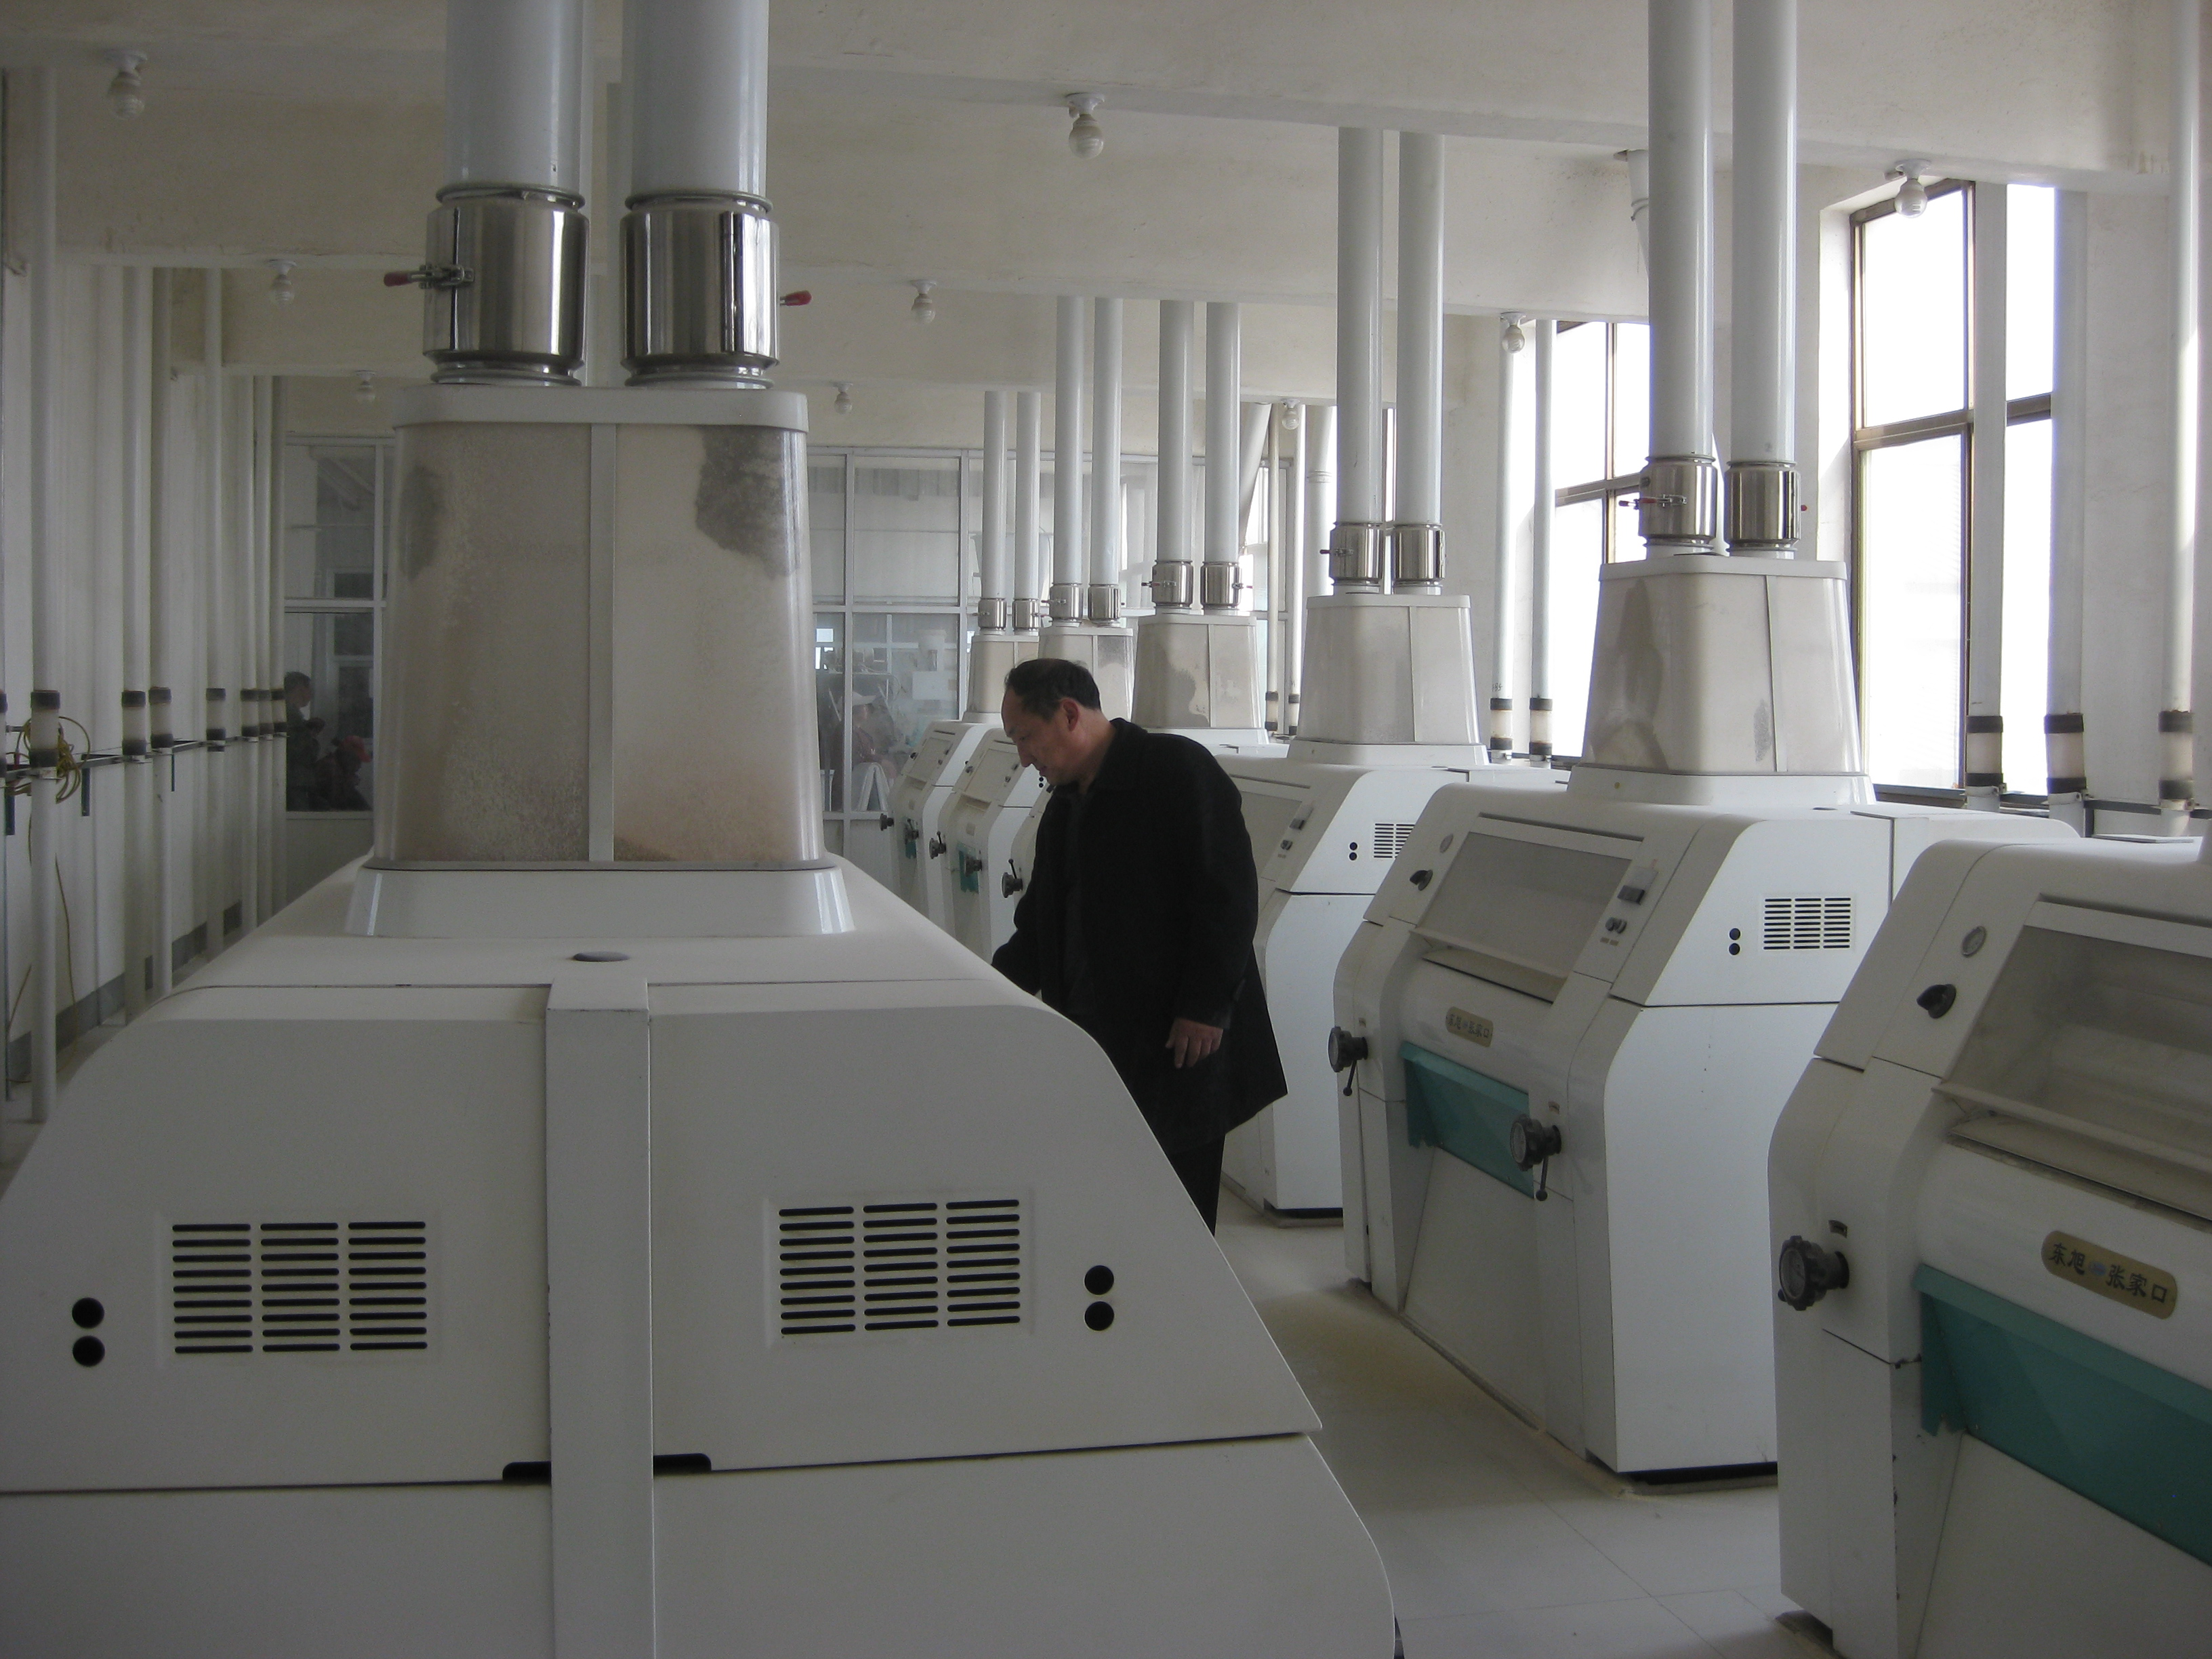 installation of the 200T wheat flour grinding mill project